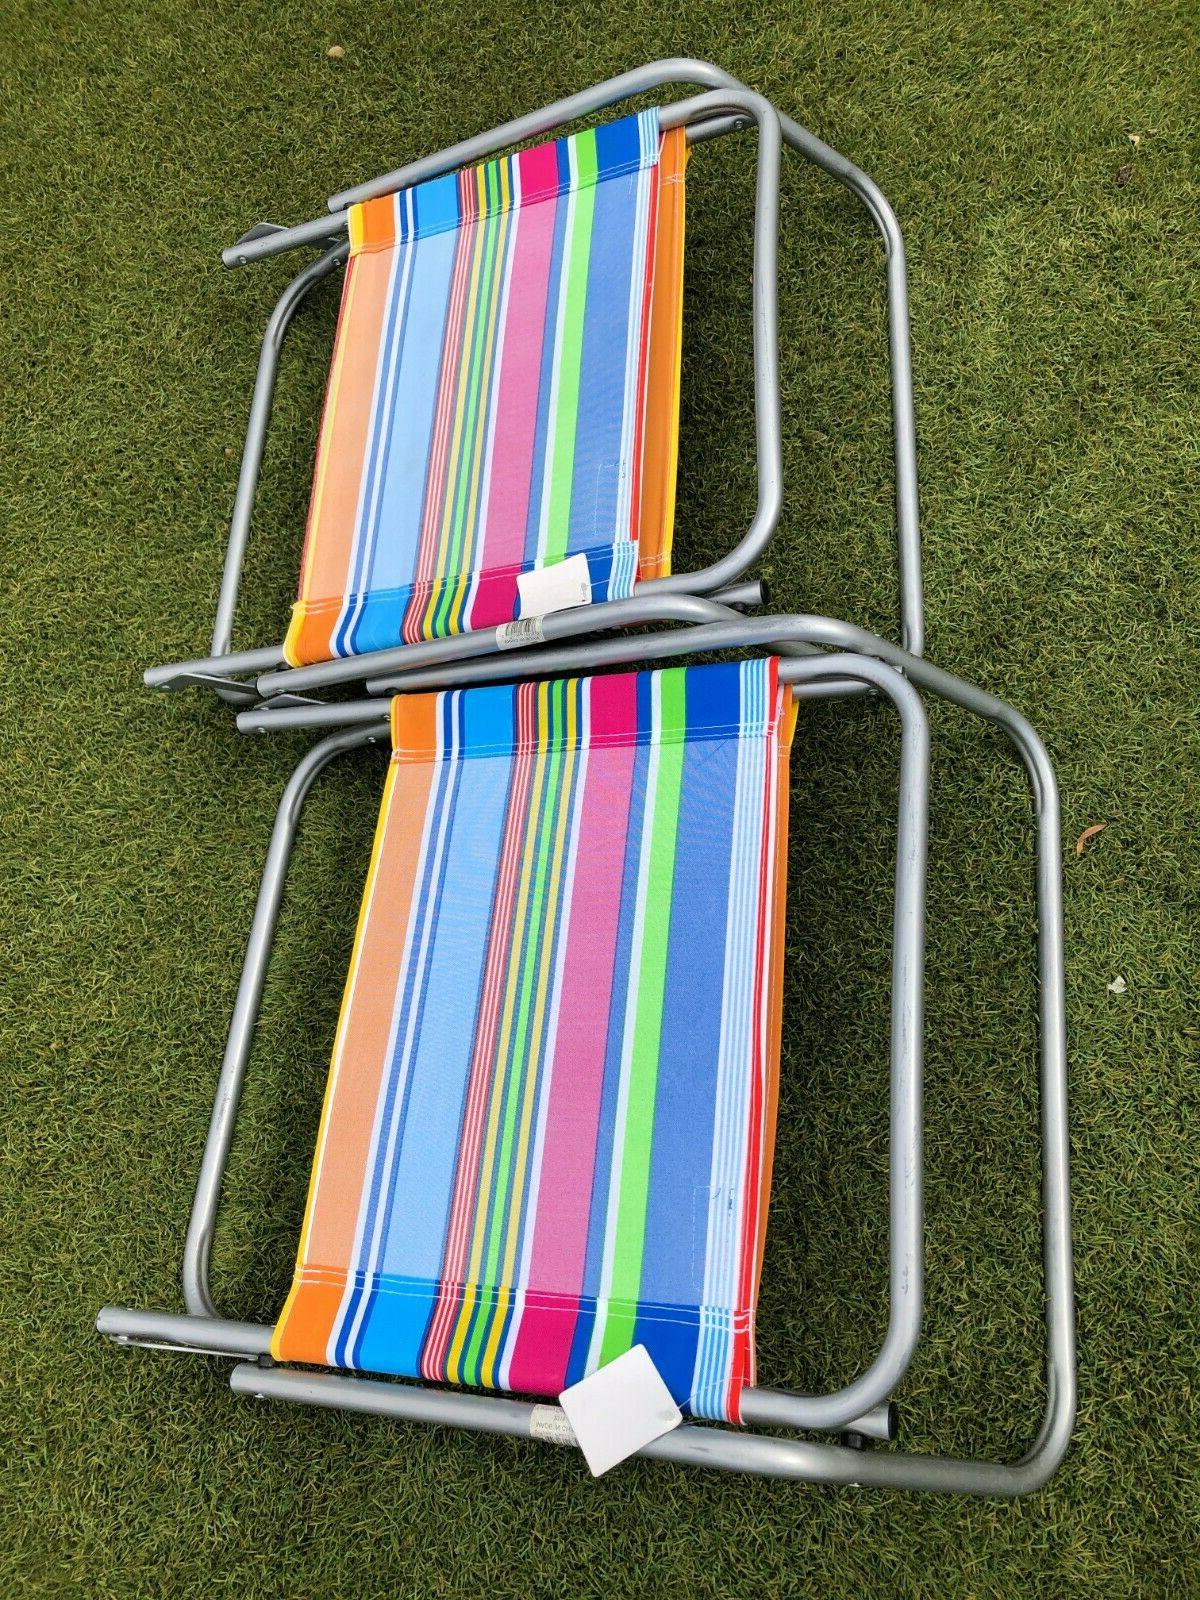 Lot 2 Copa Beach Chair Aluminum Lounge